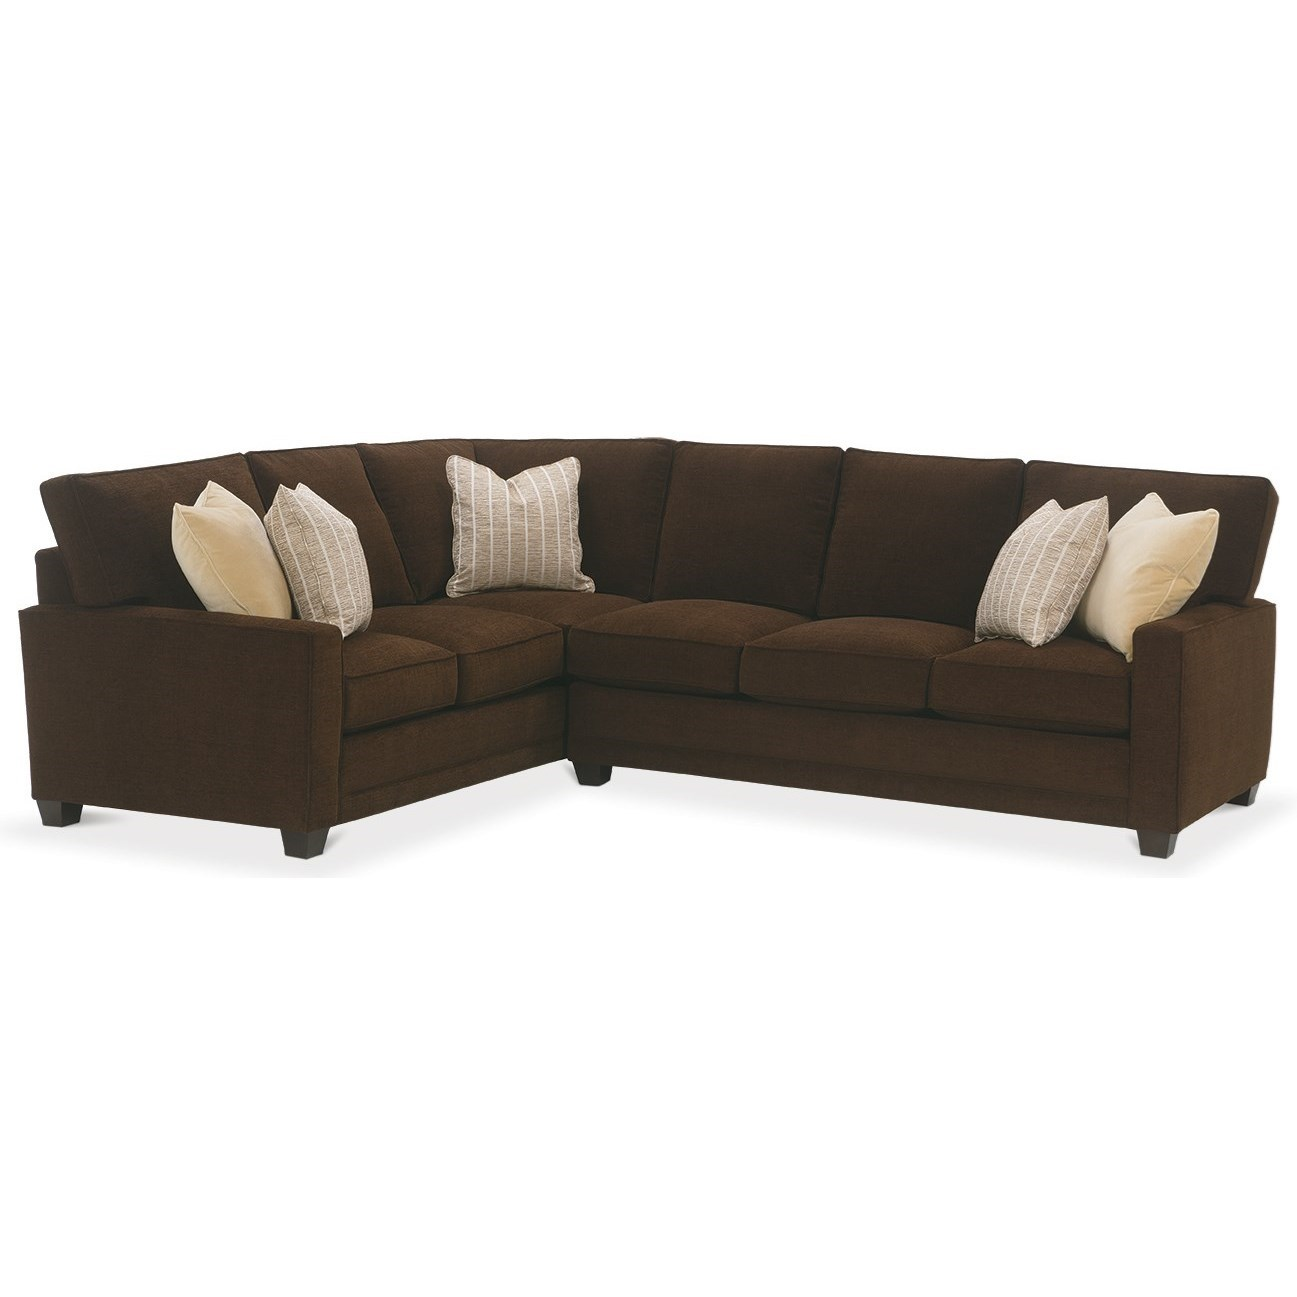 My Style I Custom Sectional Sofa by Rowe at Baer's Furniture